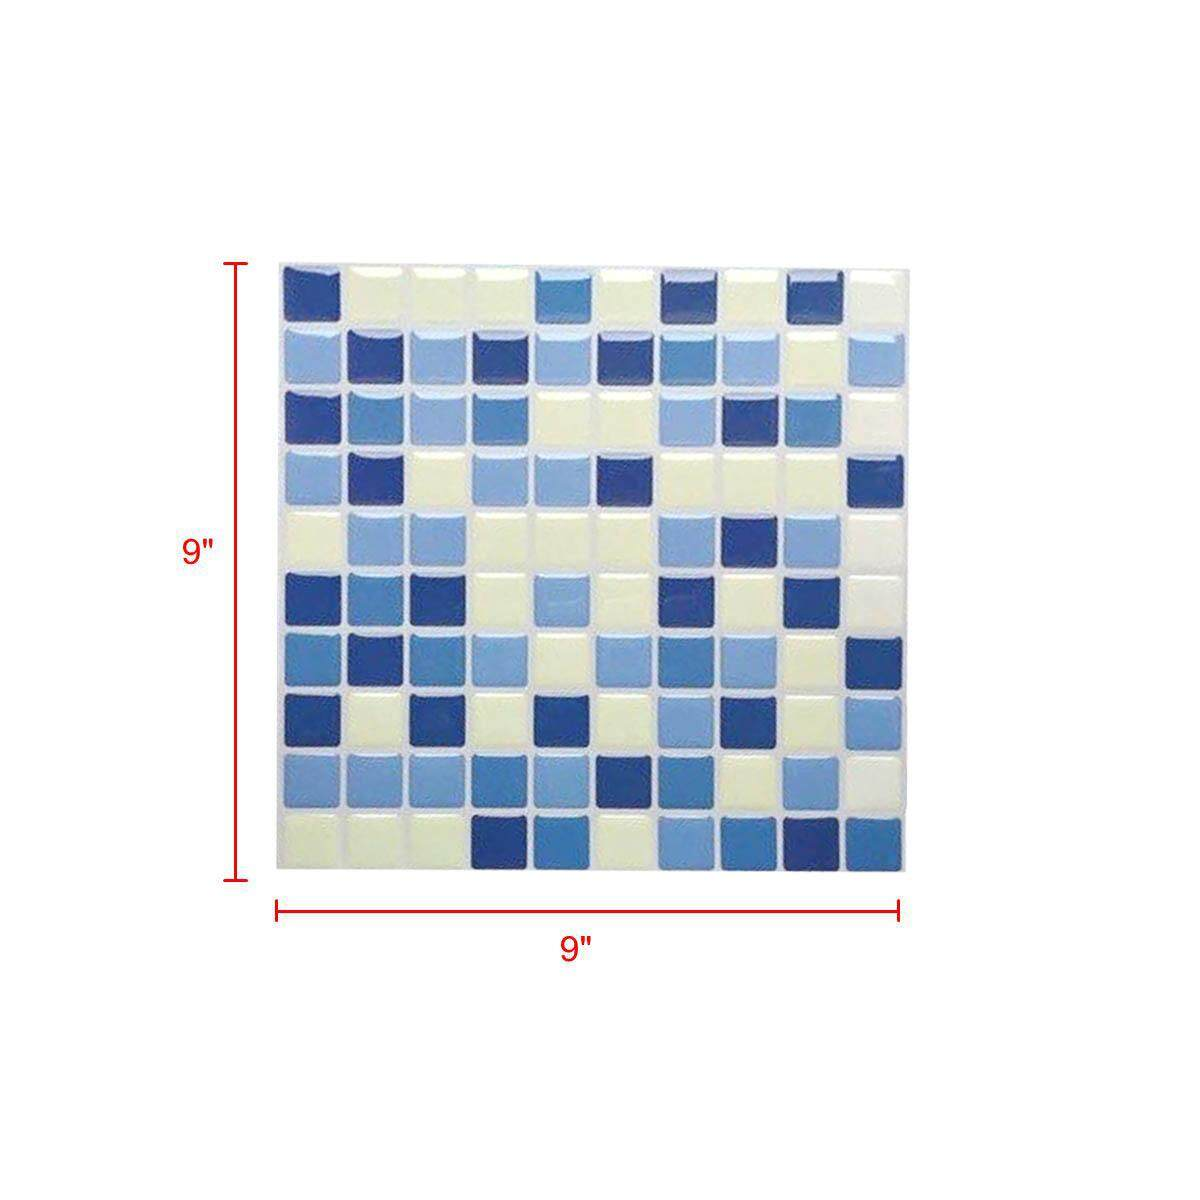 3D Wallpaper Mosaic Texture Sticker Home Indoor Deco Grid With Blue & White